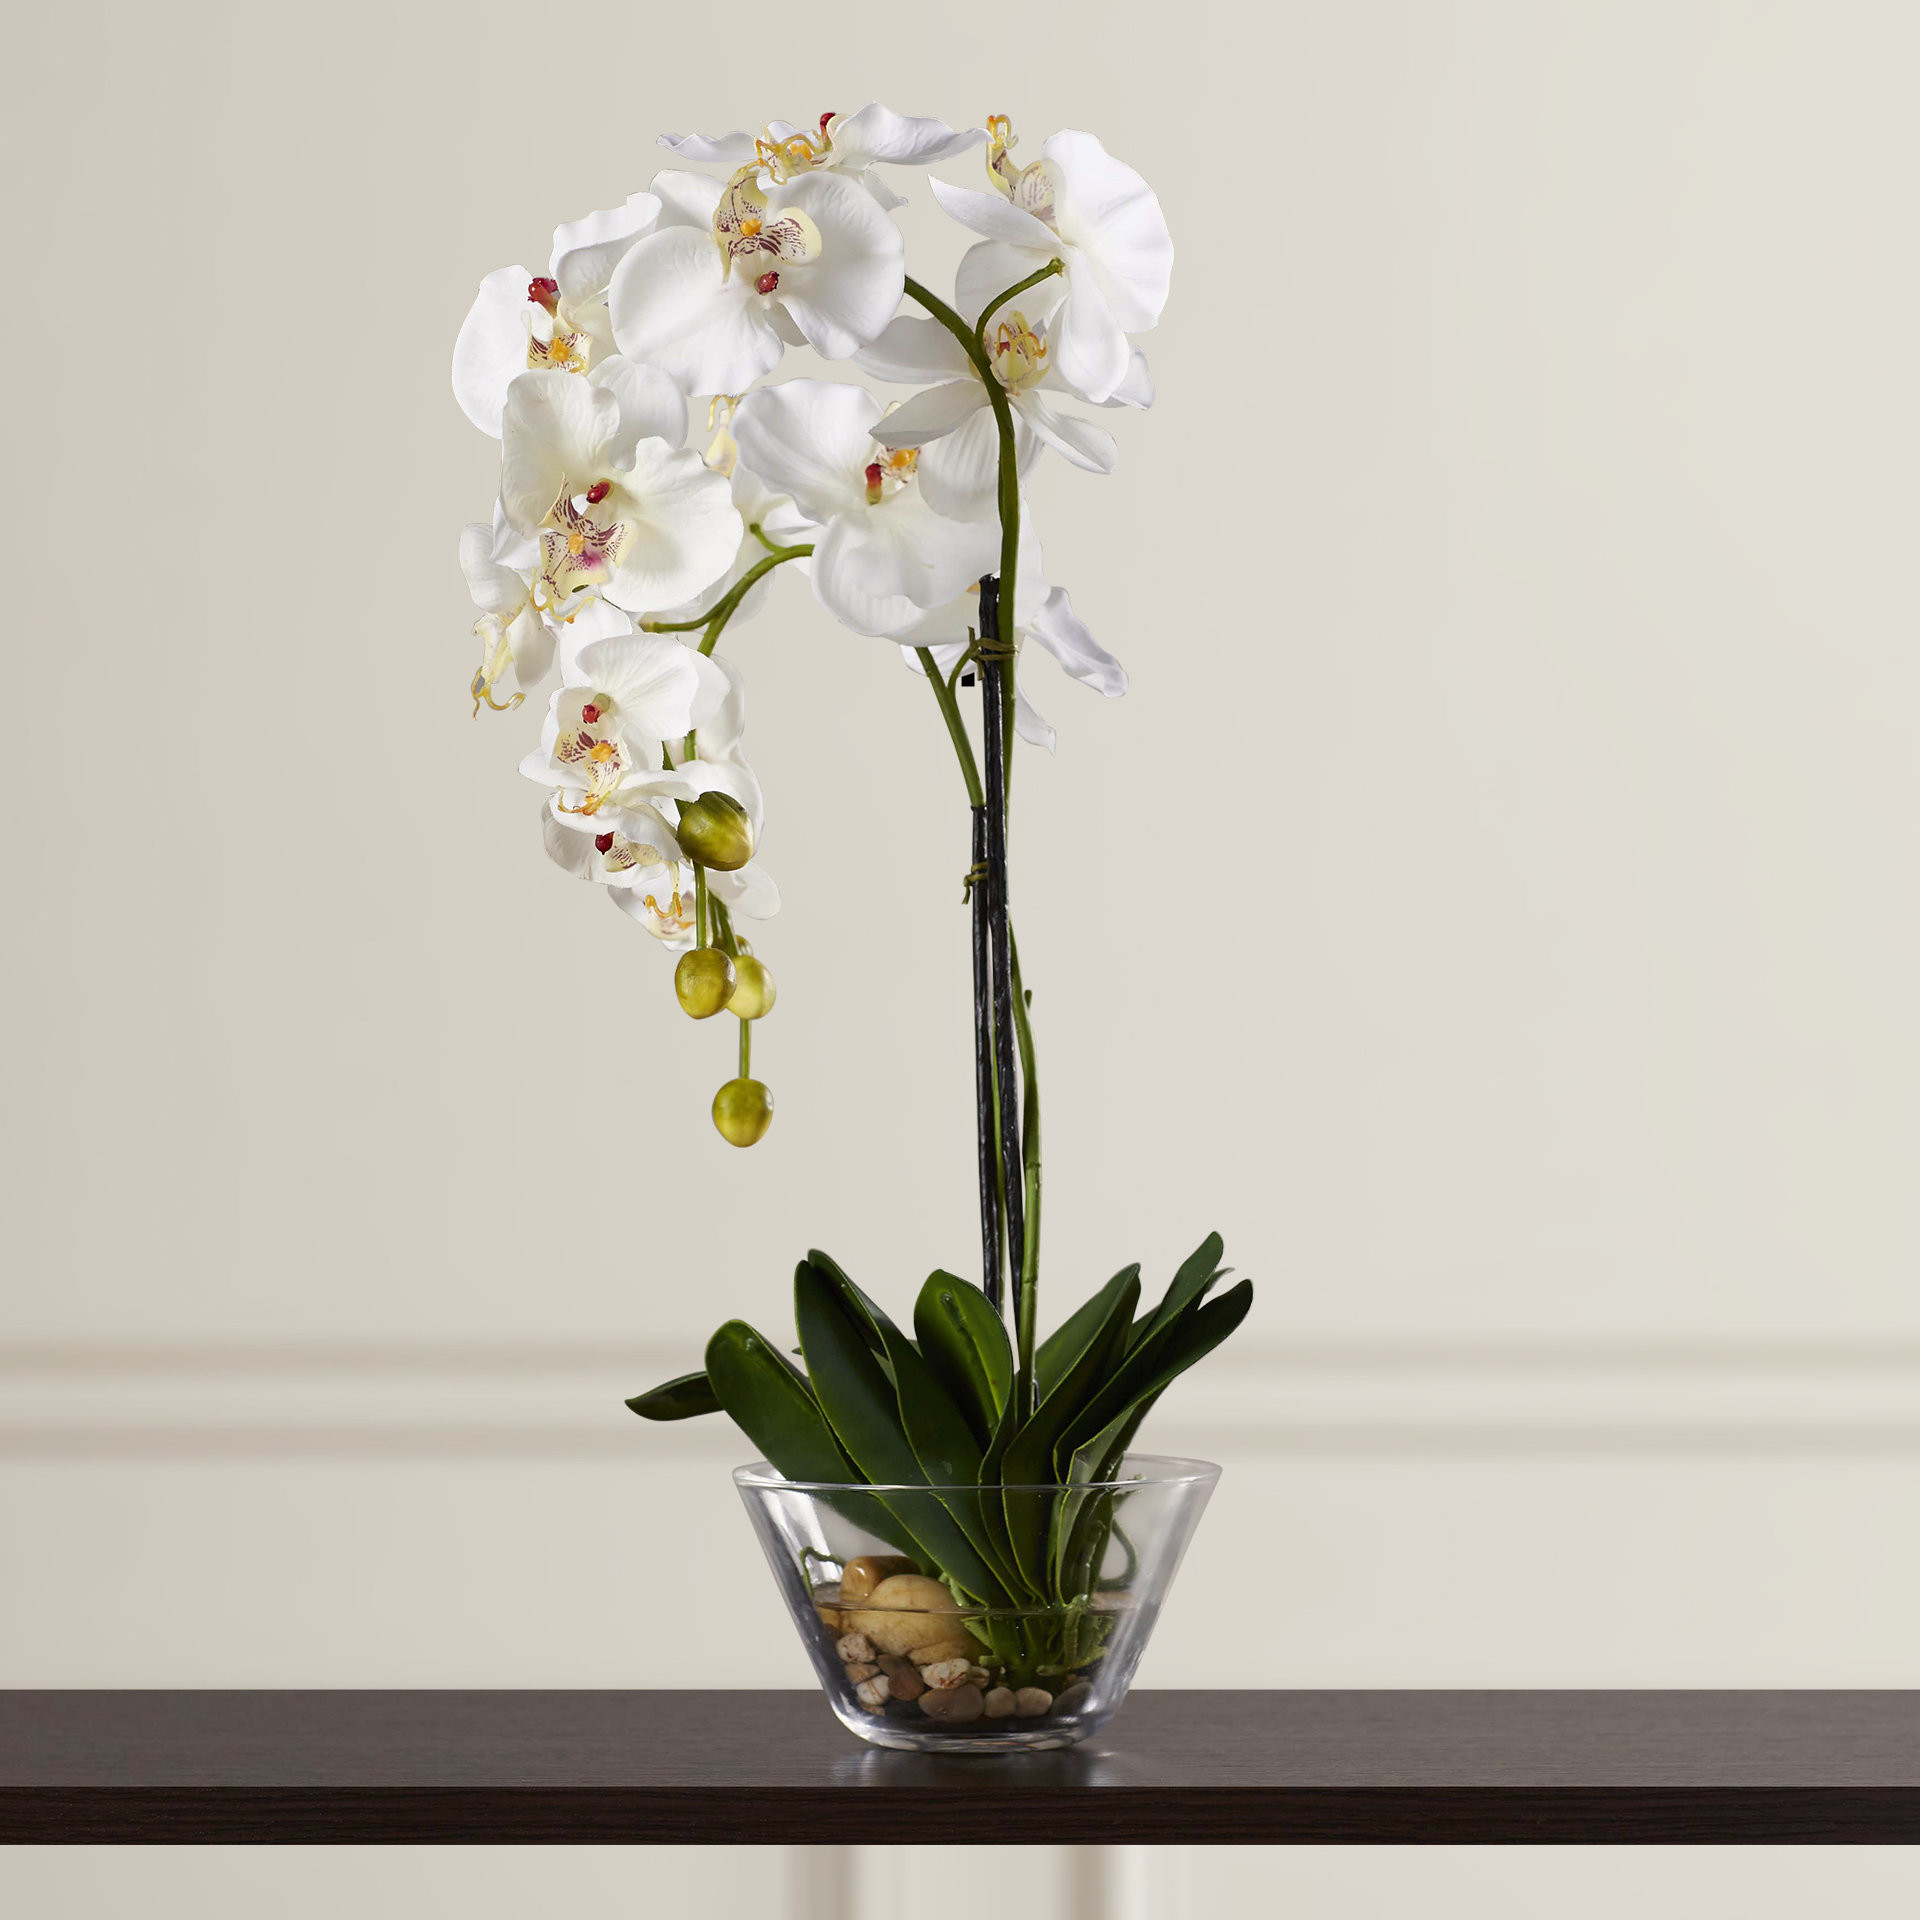 Vase for Long Stem Flowers Of Three Posts Phalaenopsis Silk White orchid In Glass Vase Reviews for Three Posts Phalaenopsis Silk White orchid In Glass Vase Reviews Wayfair